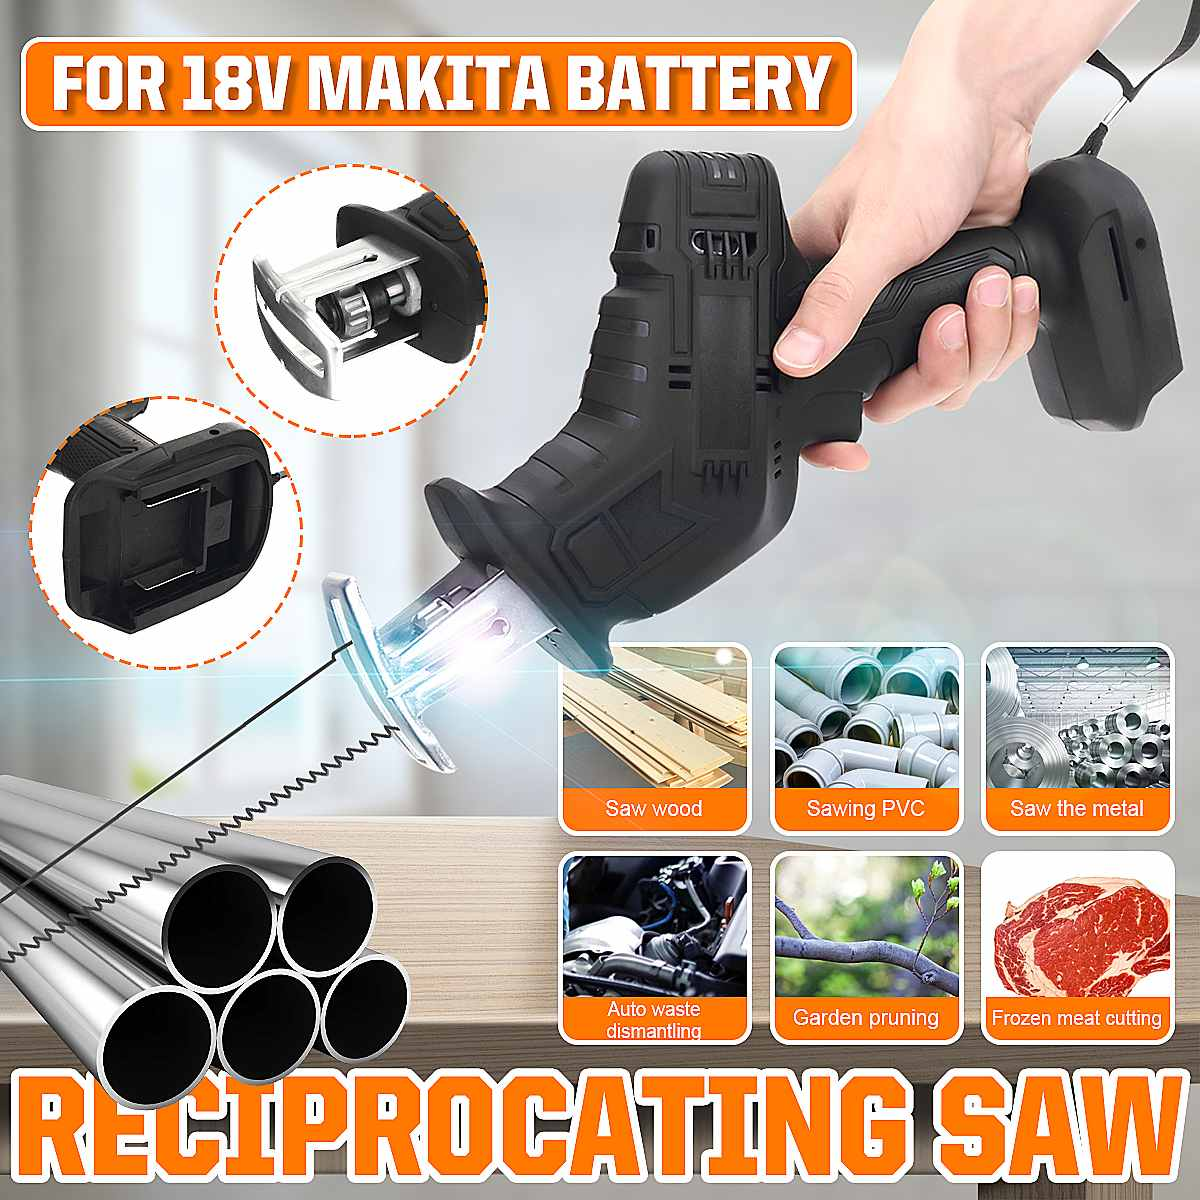 18V Mini Cordless Reciprocating Saw Body Replacement Wood Cutting Tool Adjustable Speed Electric Saw Body for Makita Battery